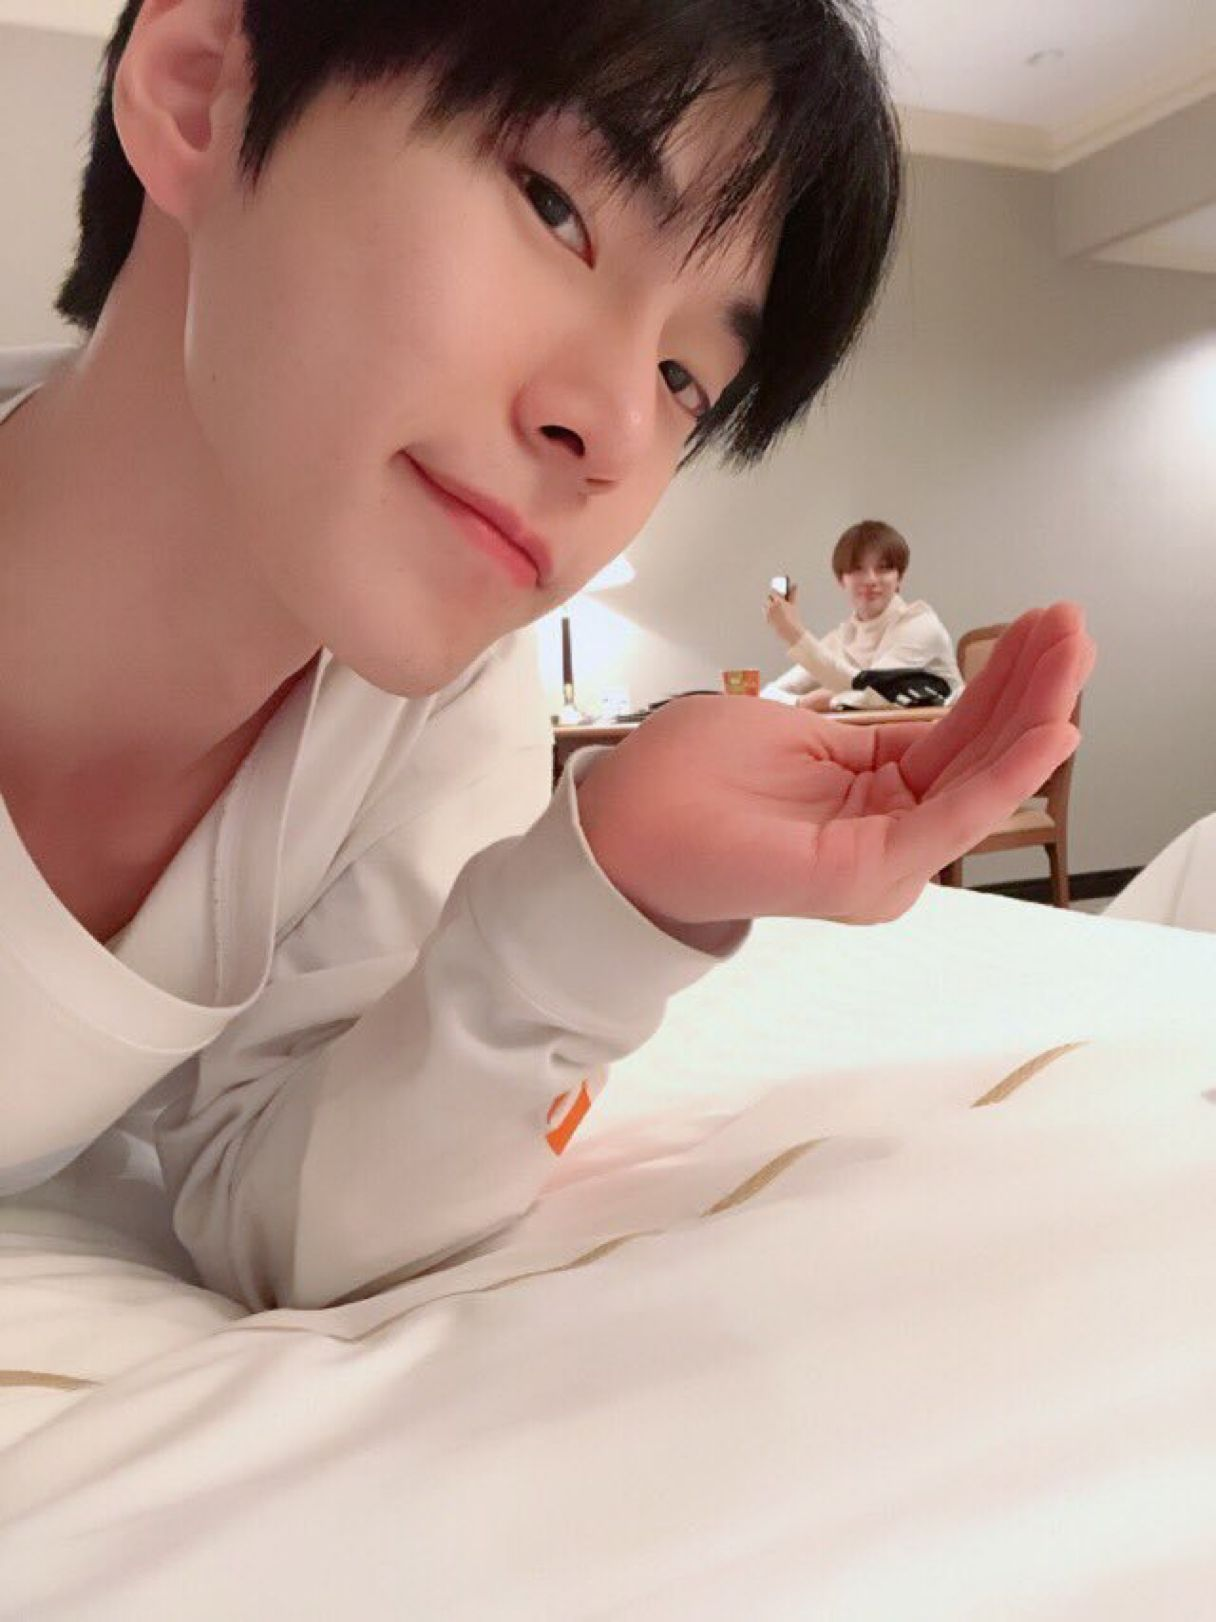 i thought taeyong was edited here aksjsk💀 Nct doyoung